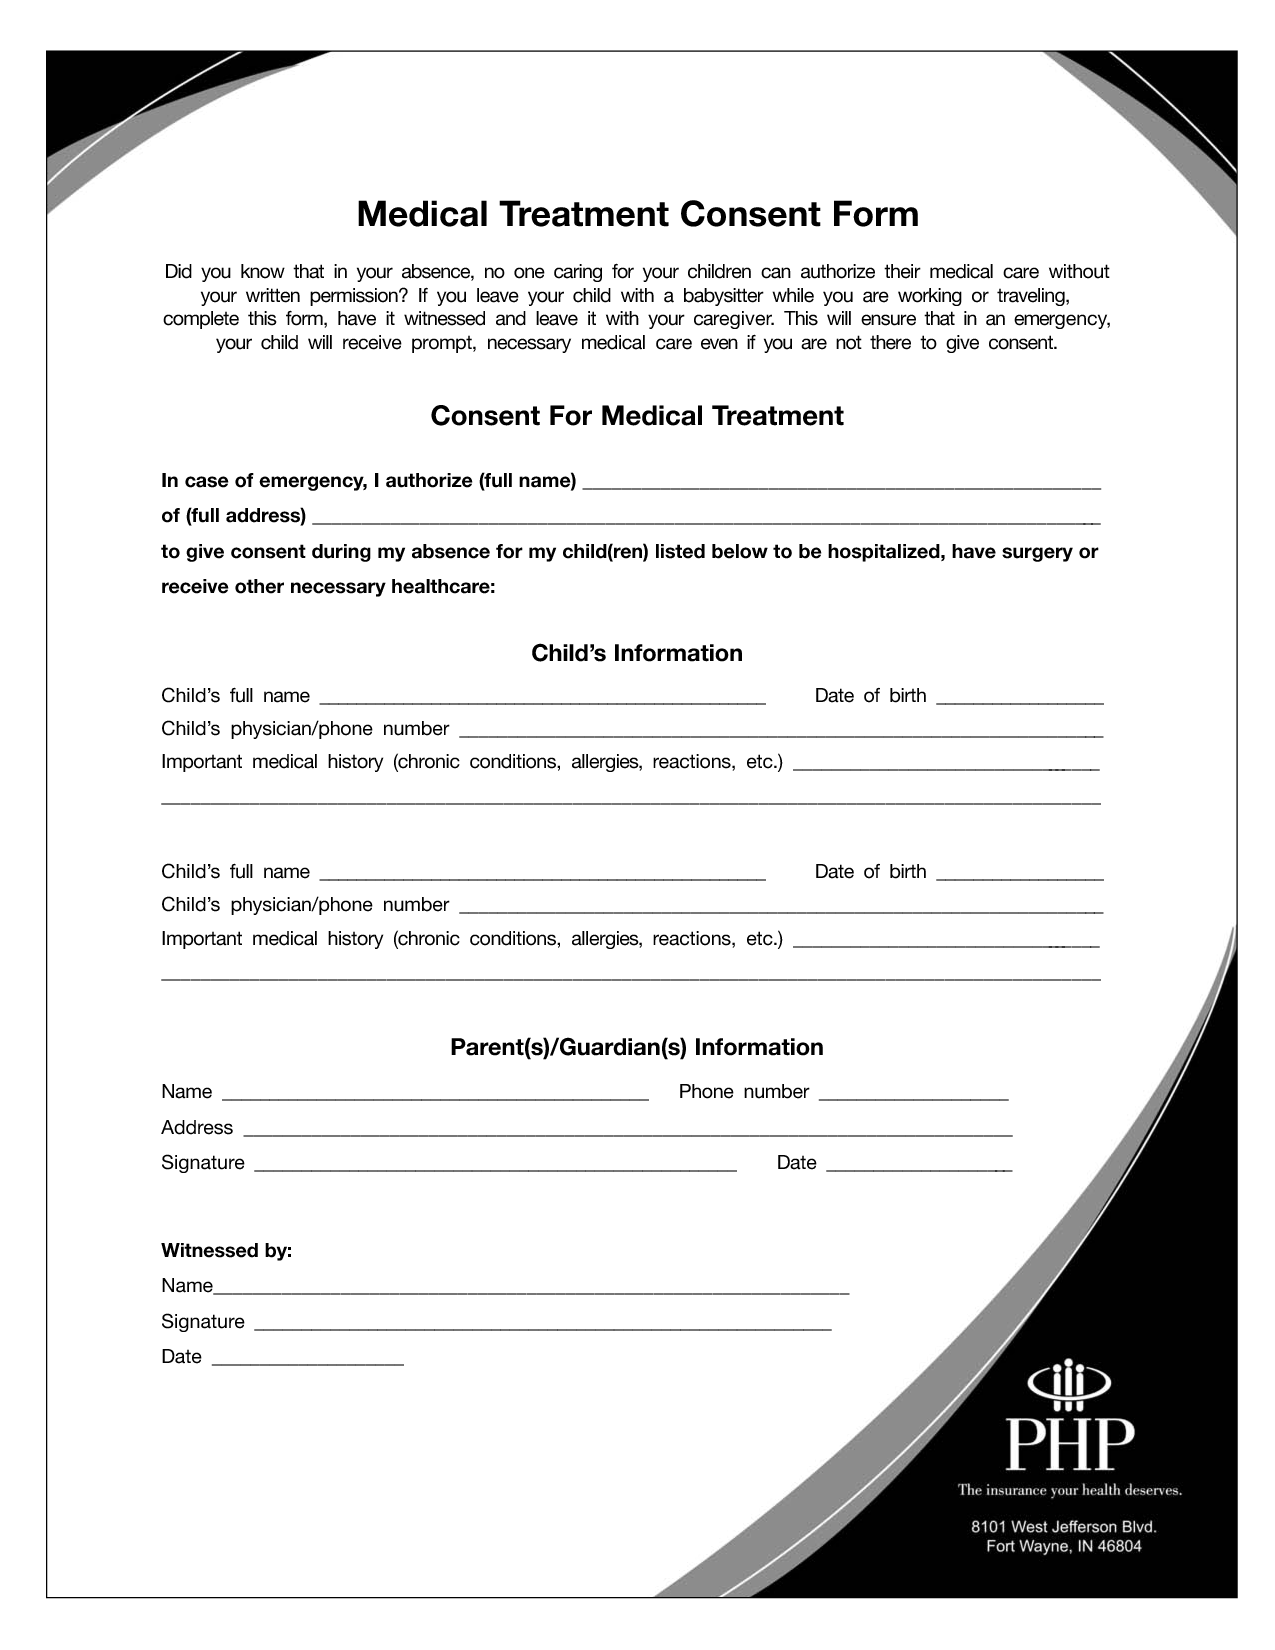 NEW FREE EMERGENCY RELEASE FORM FOR BABYSITTER Free Printable Medical Proxy Forms on free real estate, free printable wills forms, free printable guardianship forms, free printable home forms,